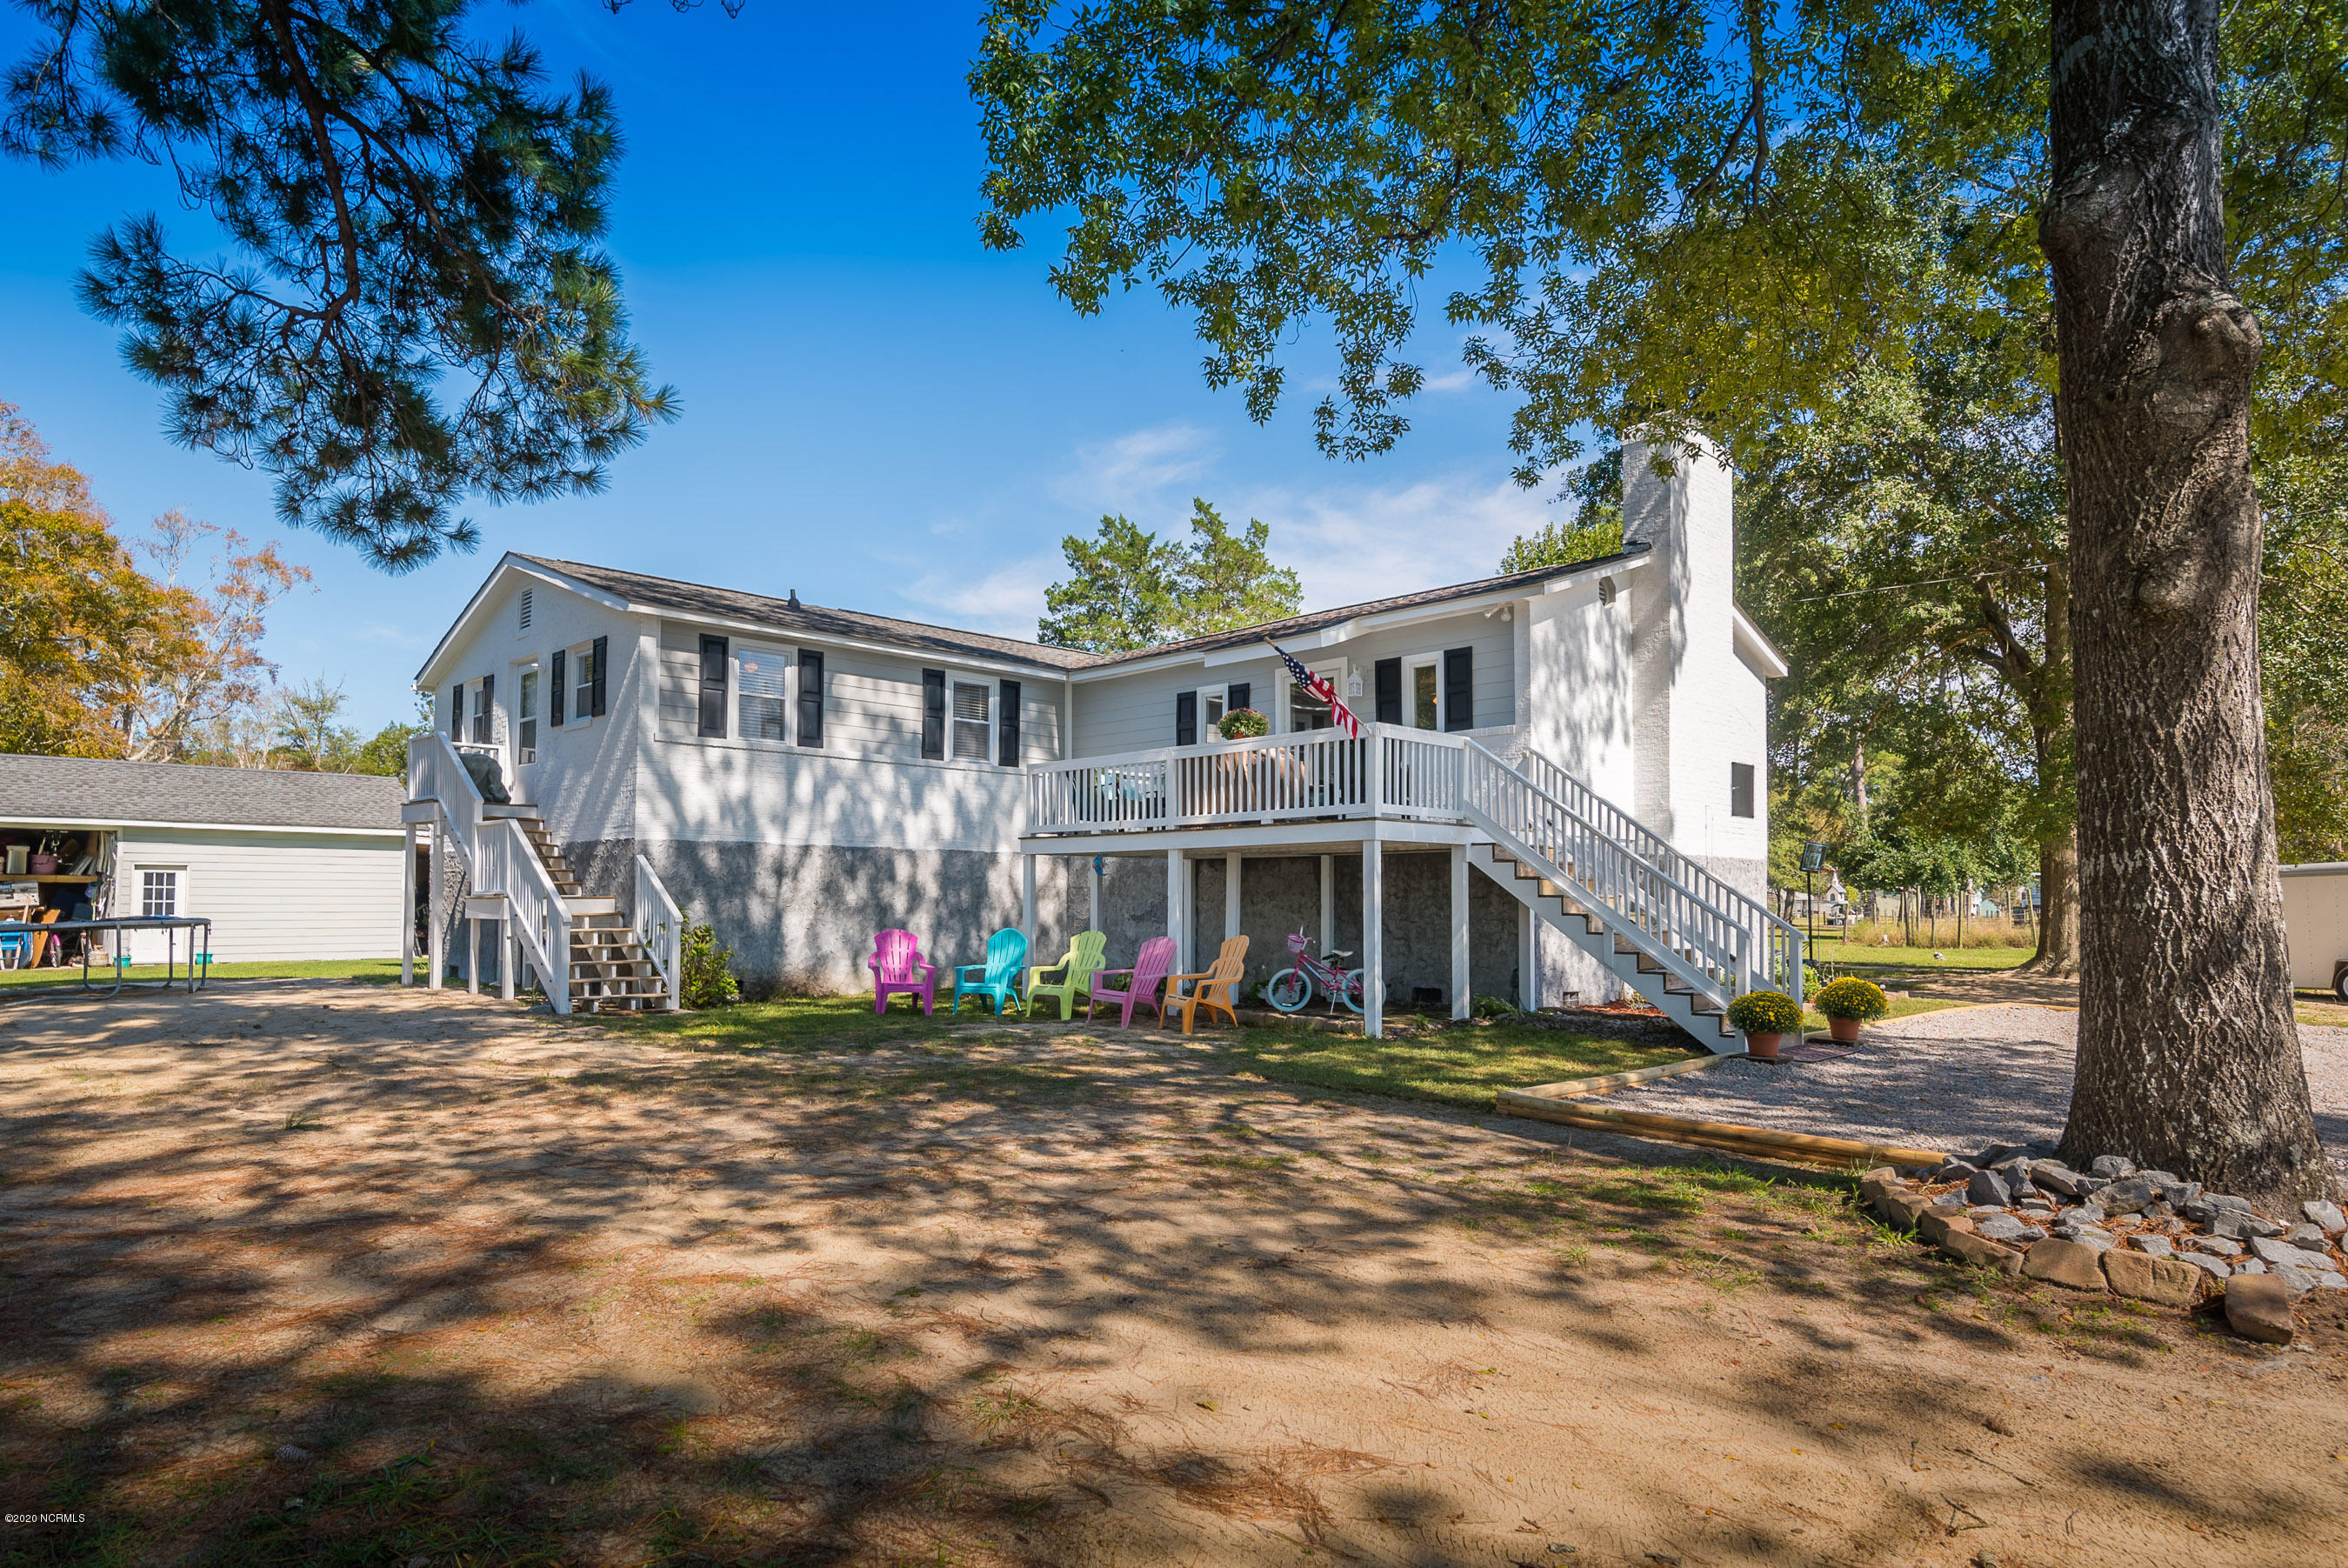 3 Duckview Trail, Washington, North Carolina 27889, 3 Bedrooms Bedrooms, 6 Rooms Rooms,2 BathroomsBathrooms,Single family residence,For sale,Duckview,100239559